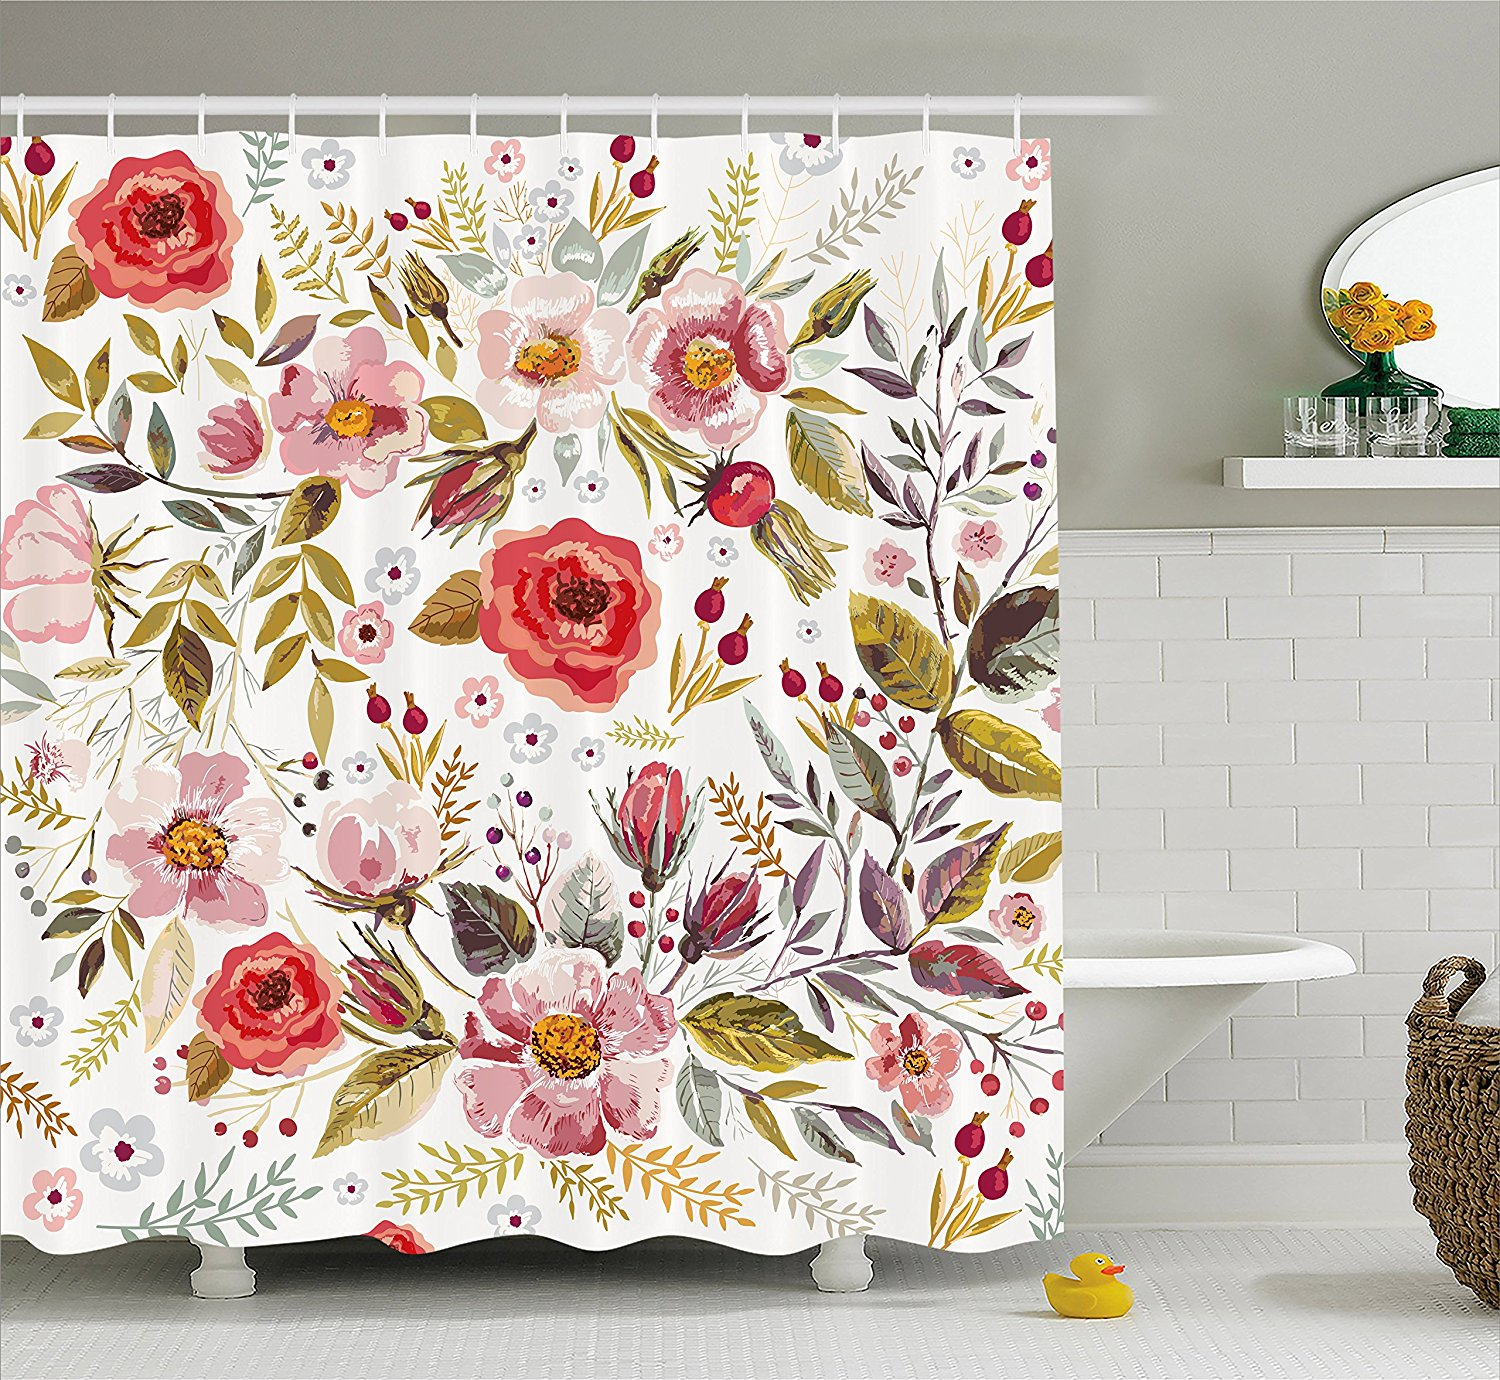 Vintage Shower Curtain Floral Theme Hand Drawn Romantic Flowers And Leaves  Illustration Fabric Bathroom Decor Set With Hooks In Shower Curtains From  Home ...